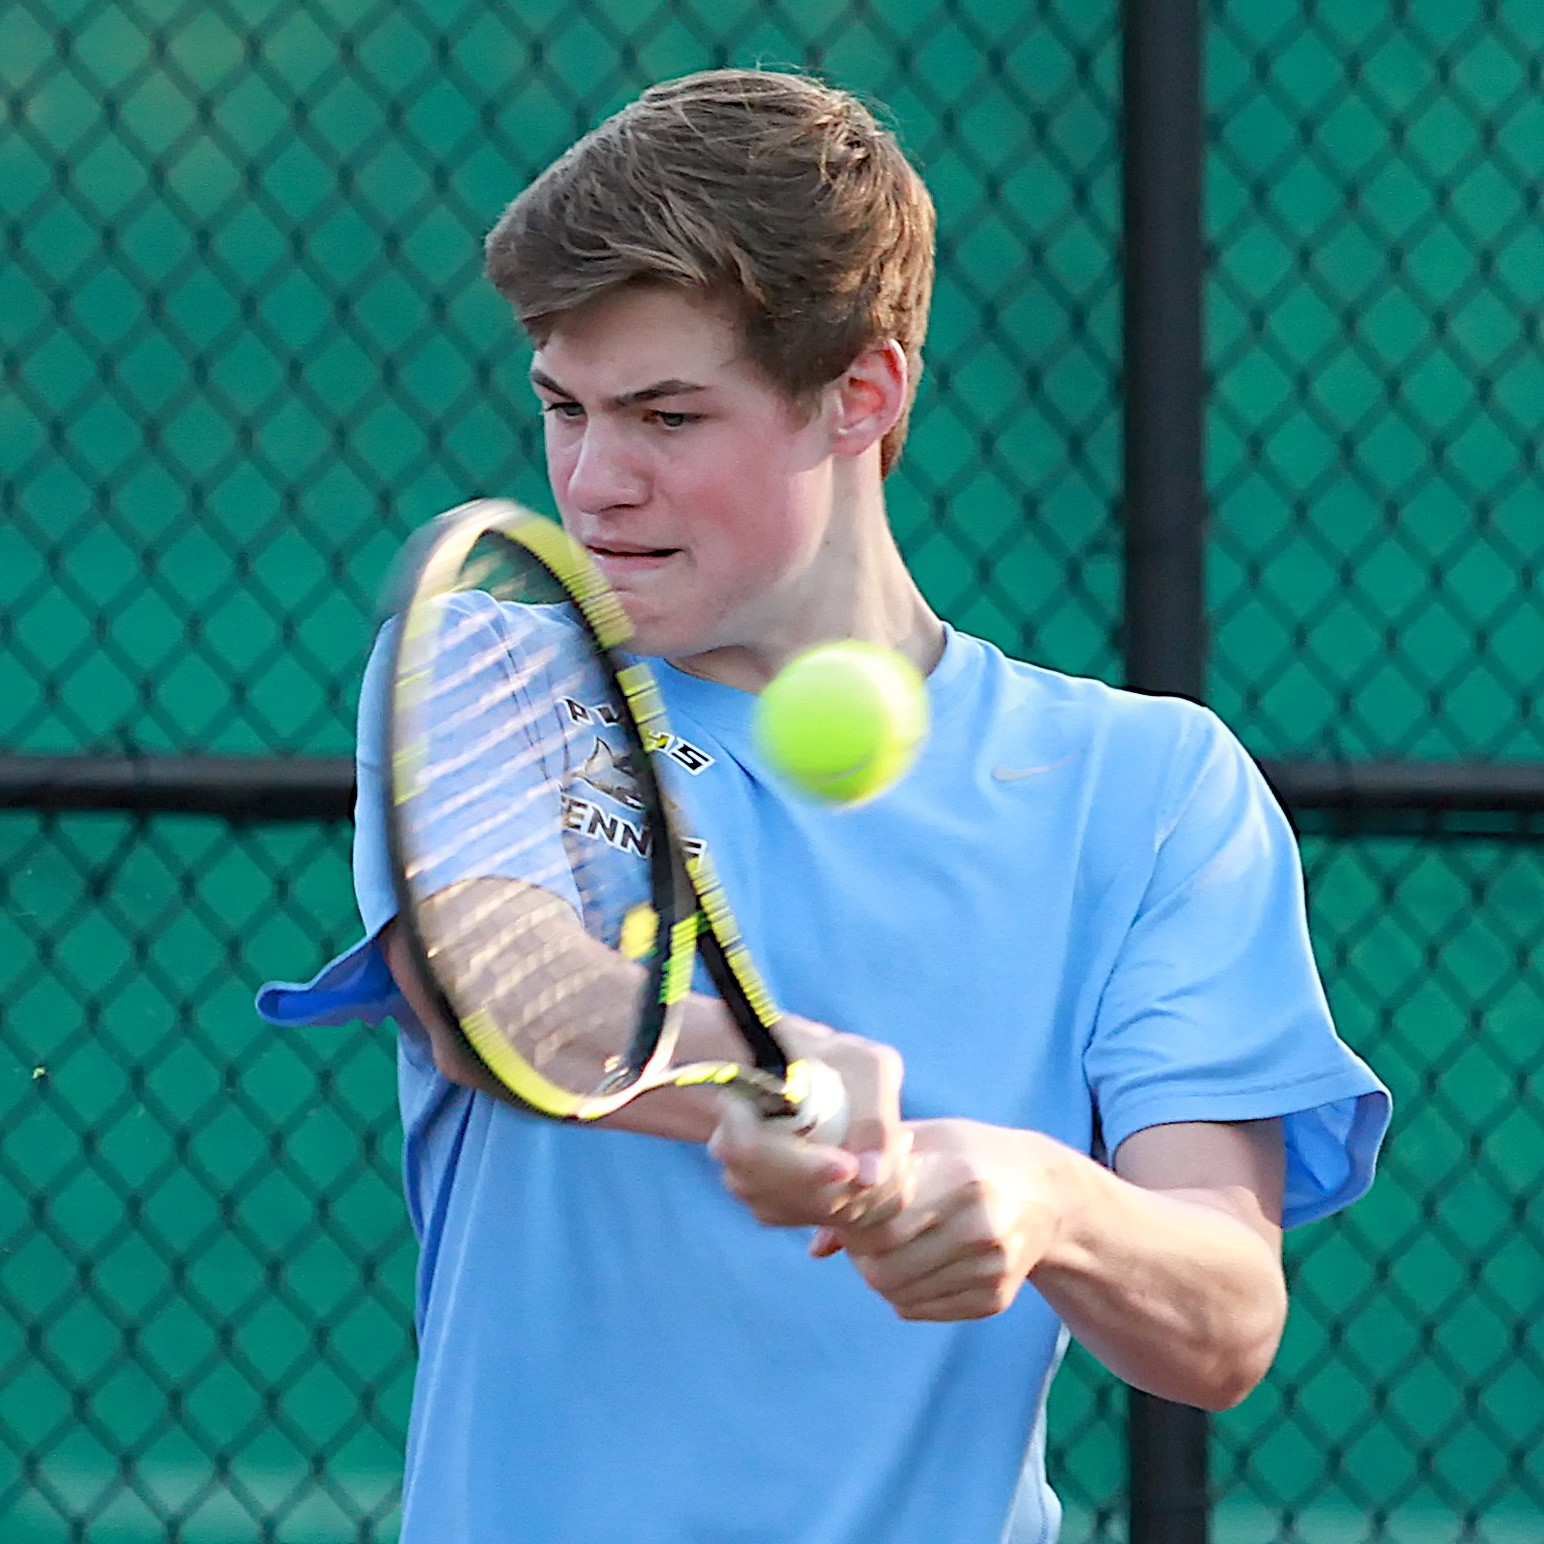 Davis Massey of the Sharks concentrates as he hits a backhand against Bertram.